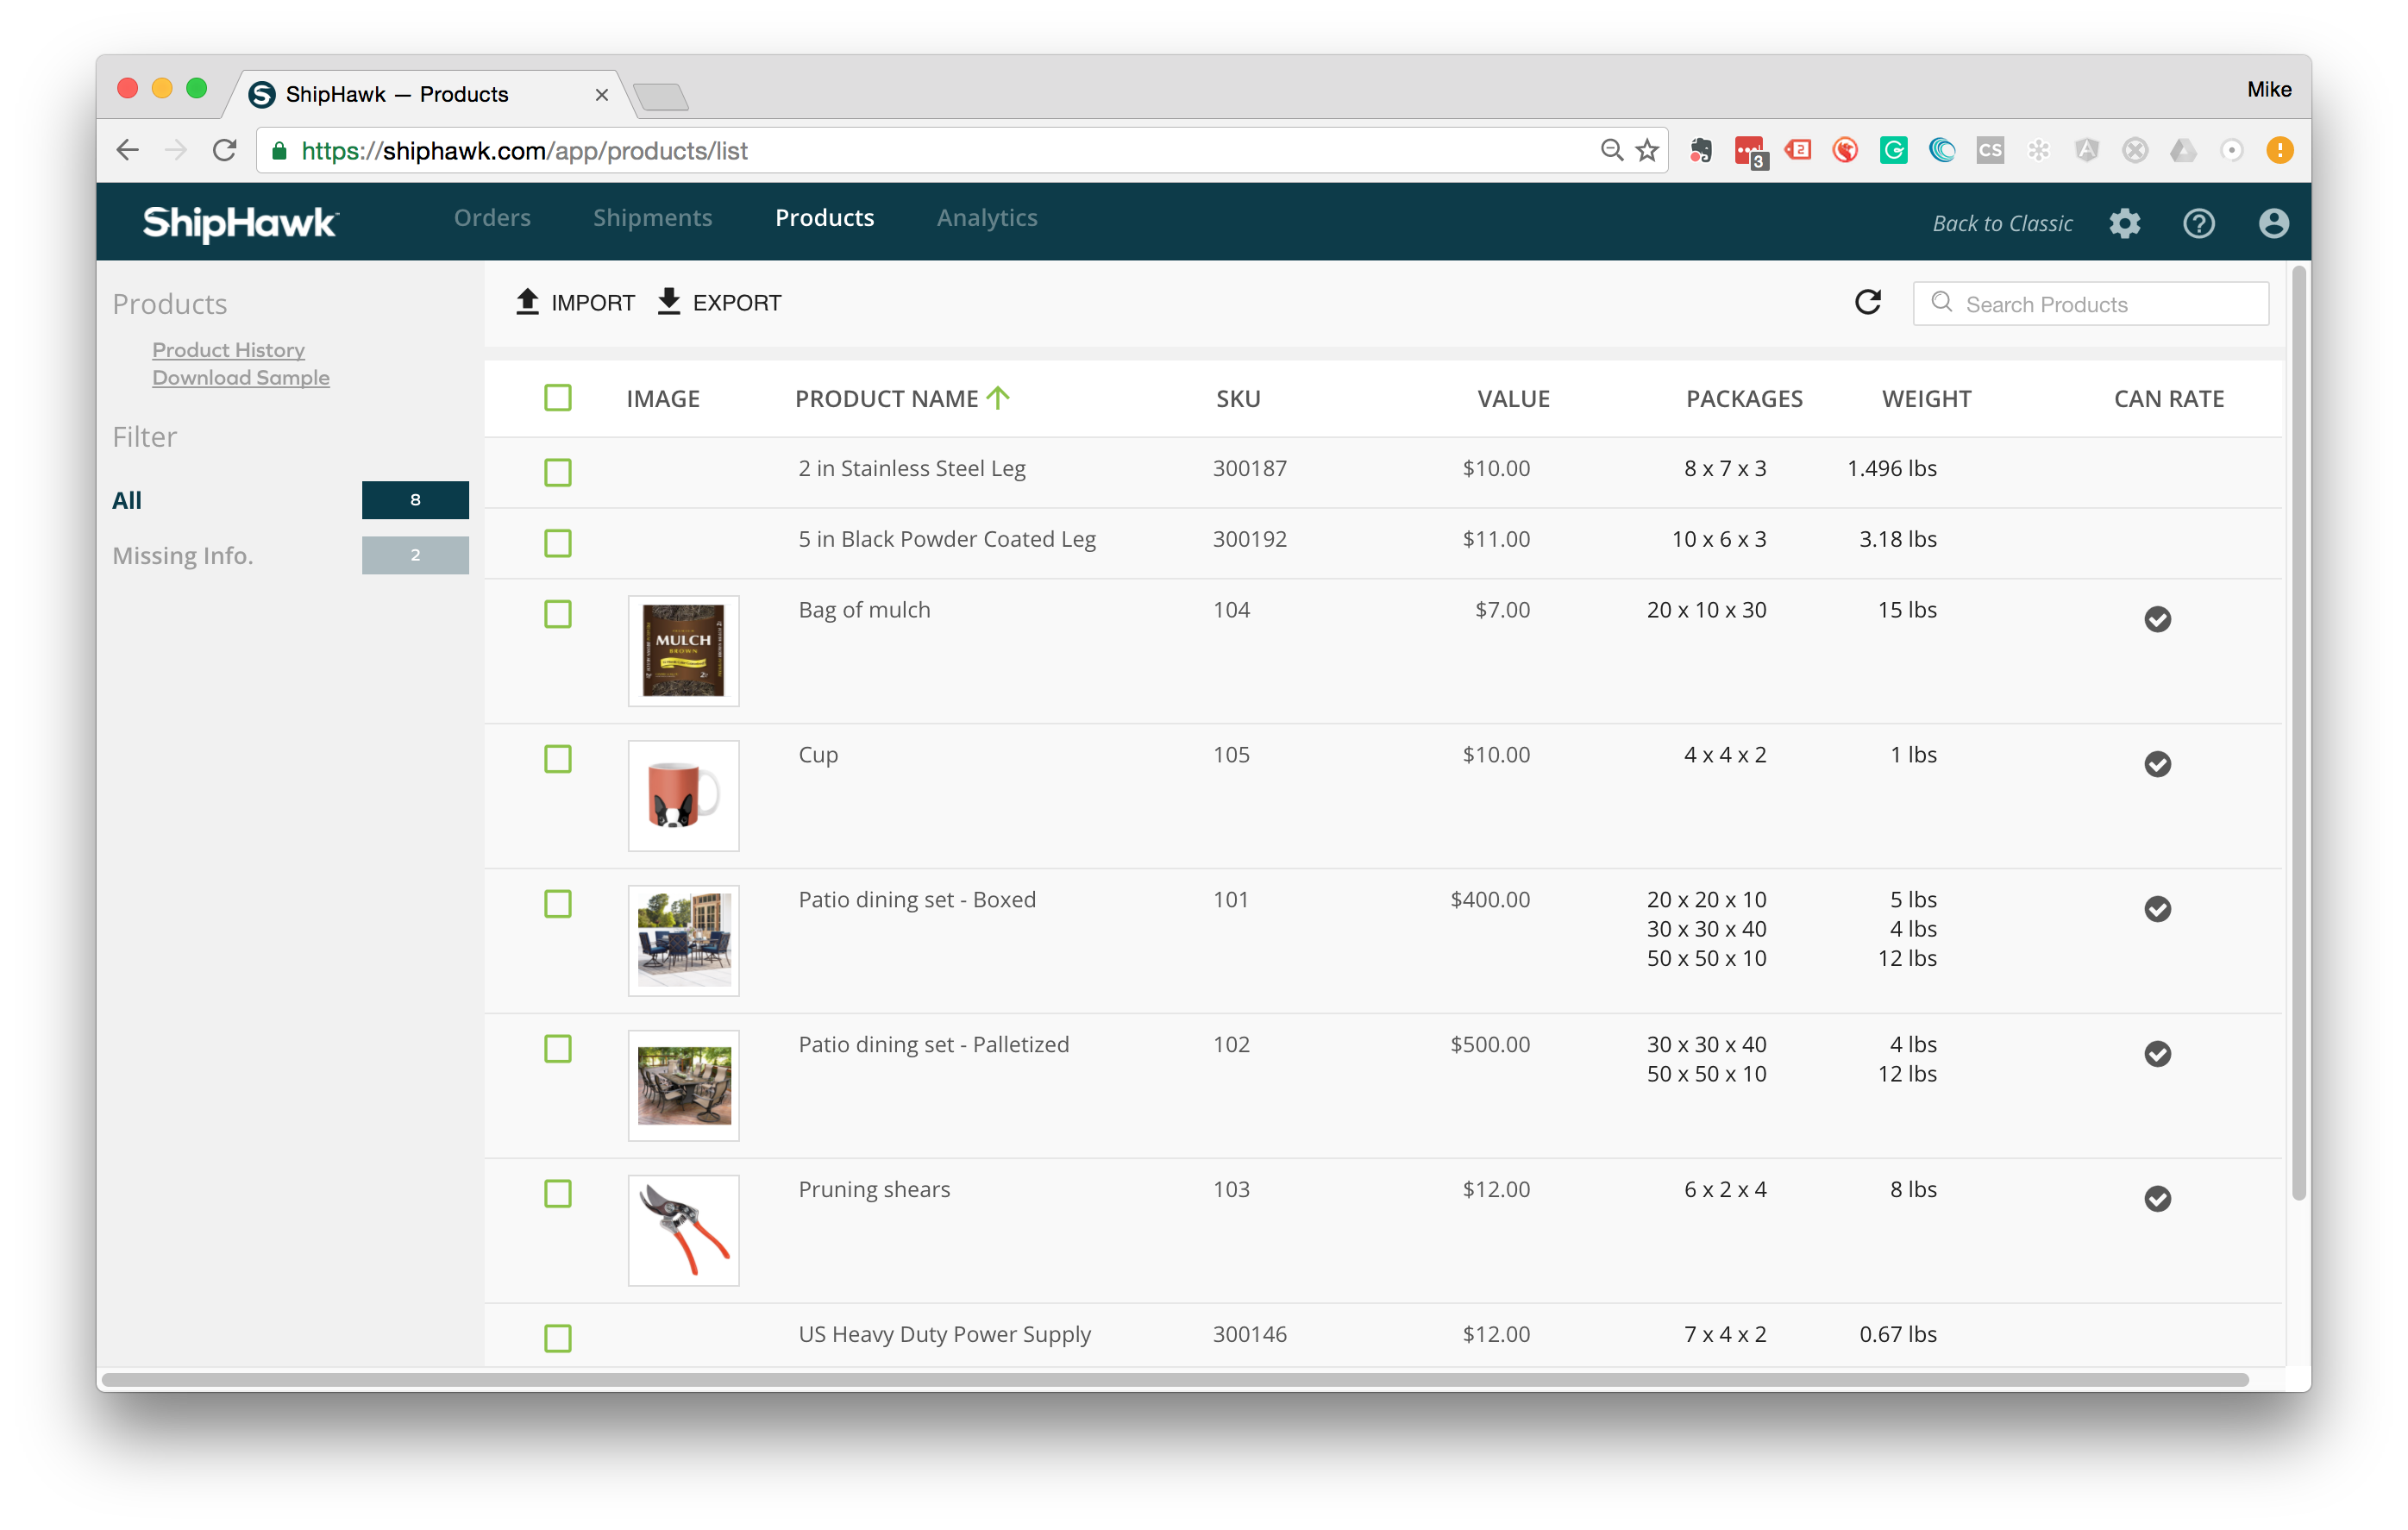 shipping software that enables order fulfillment